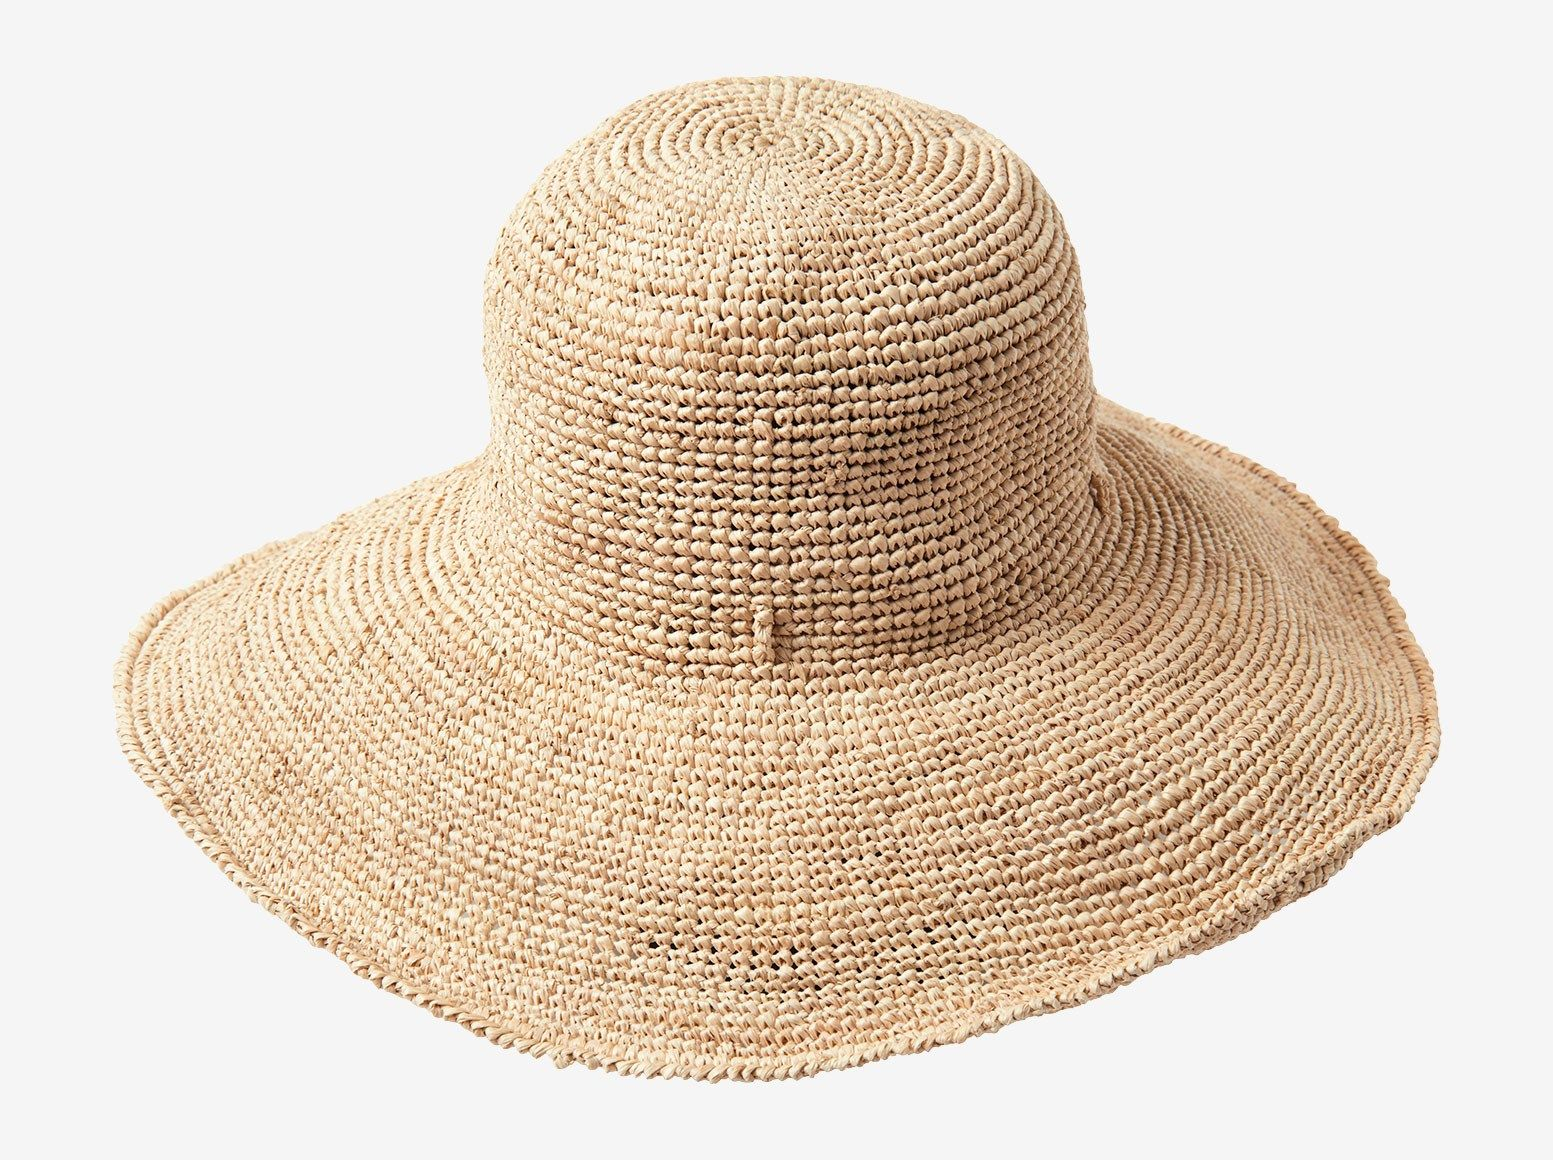 47bbd5b8a BOUNDLESS   Chic, floppy, wide brimmed straw hat. Can be worn with ...